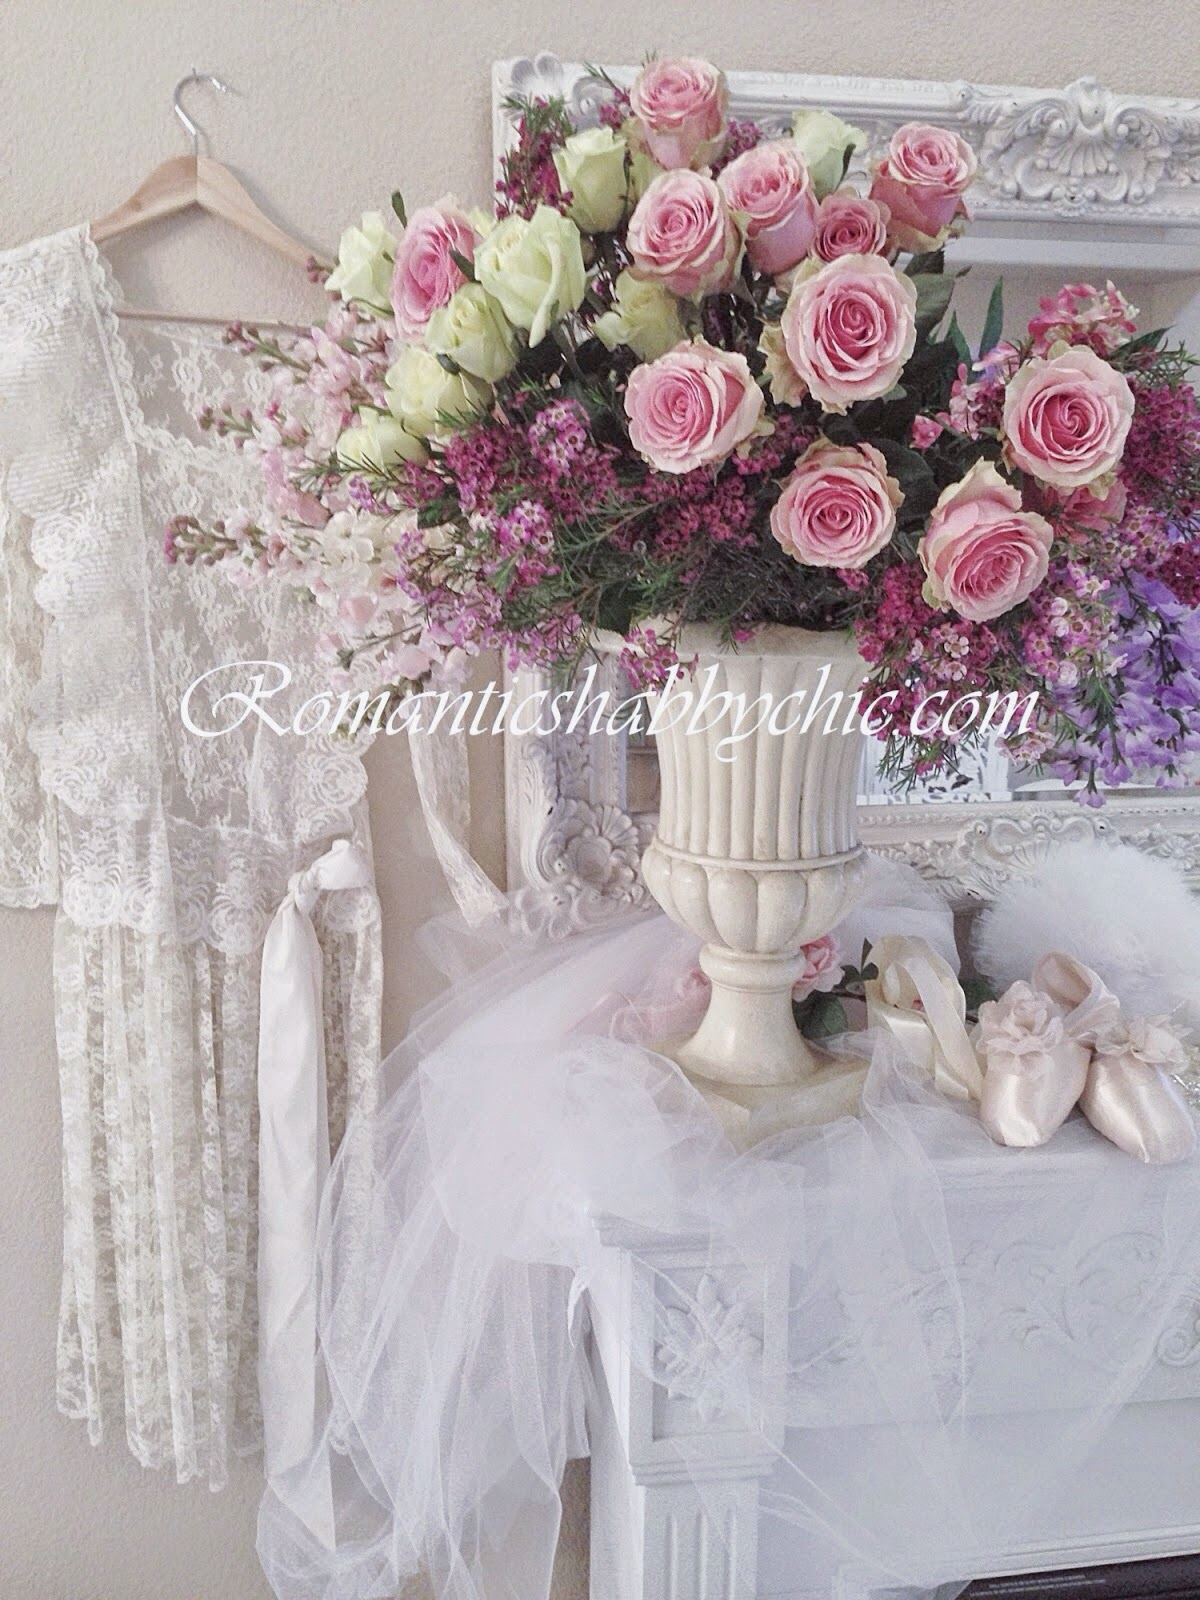 Romantic shabby chic home romantic shabby chic blog - Romantic Shabby Chic Timeless And So Detailed